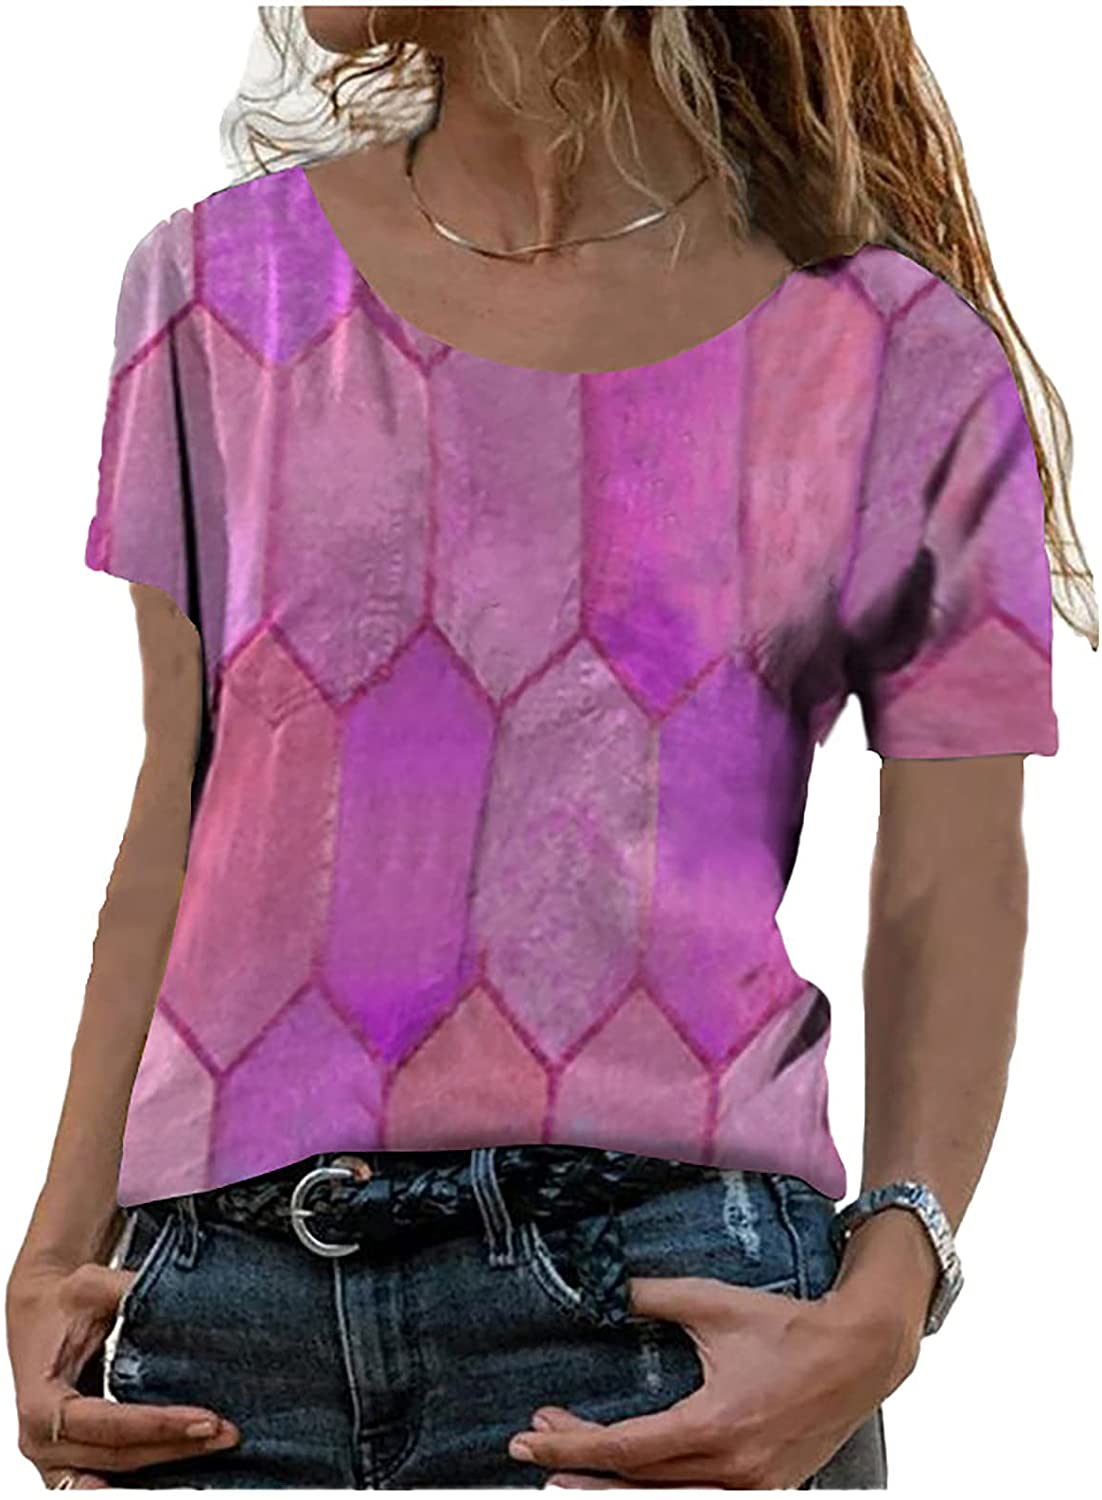 Women's Urban Casual Loose Short-Sleeved Geometric Mosaic Color Blouse Tops Printing Round Neck Tunic